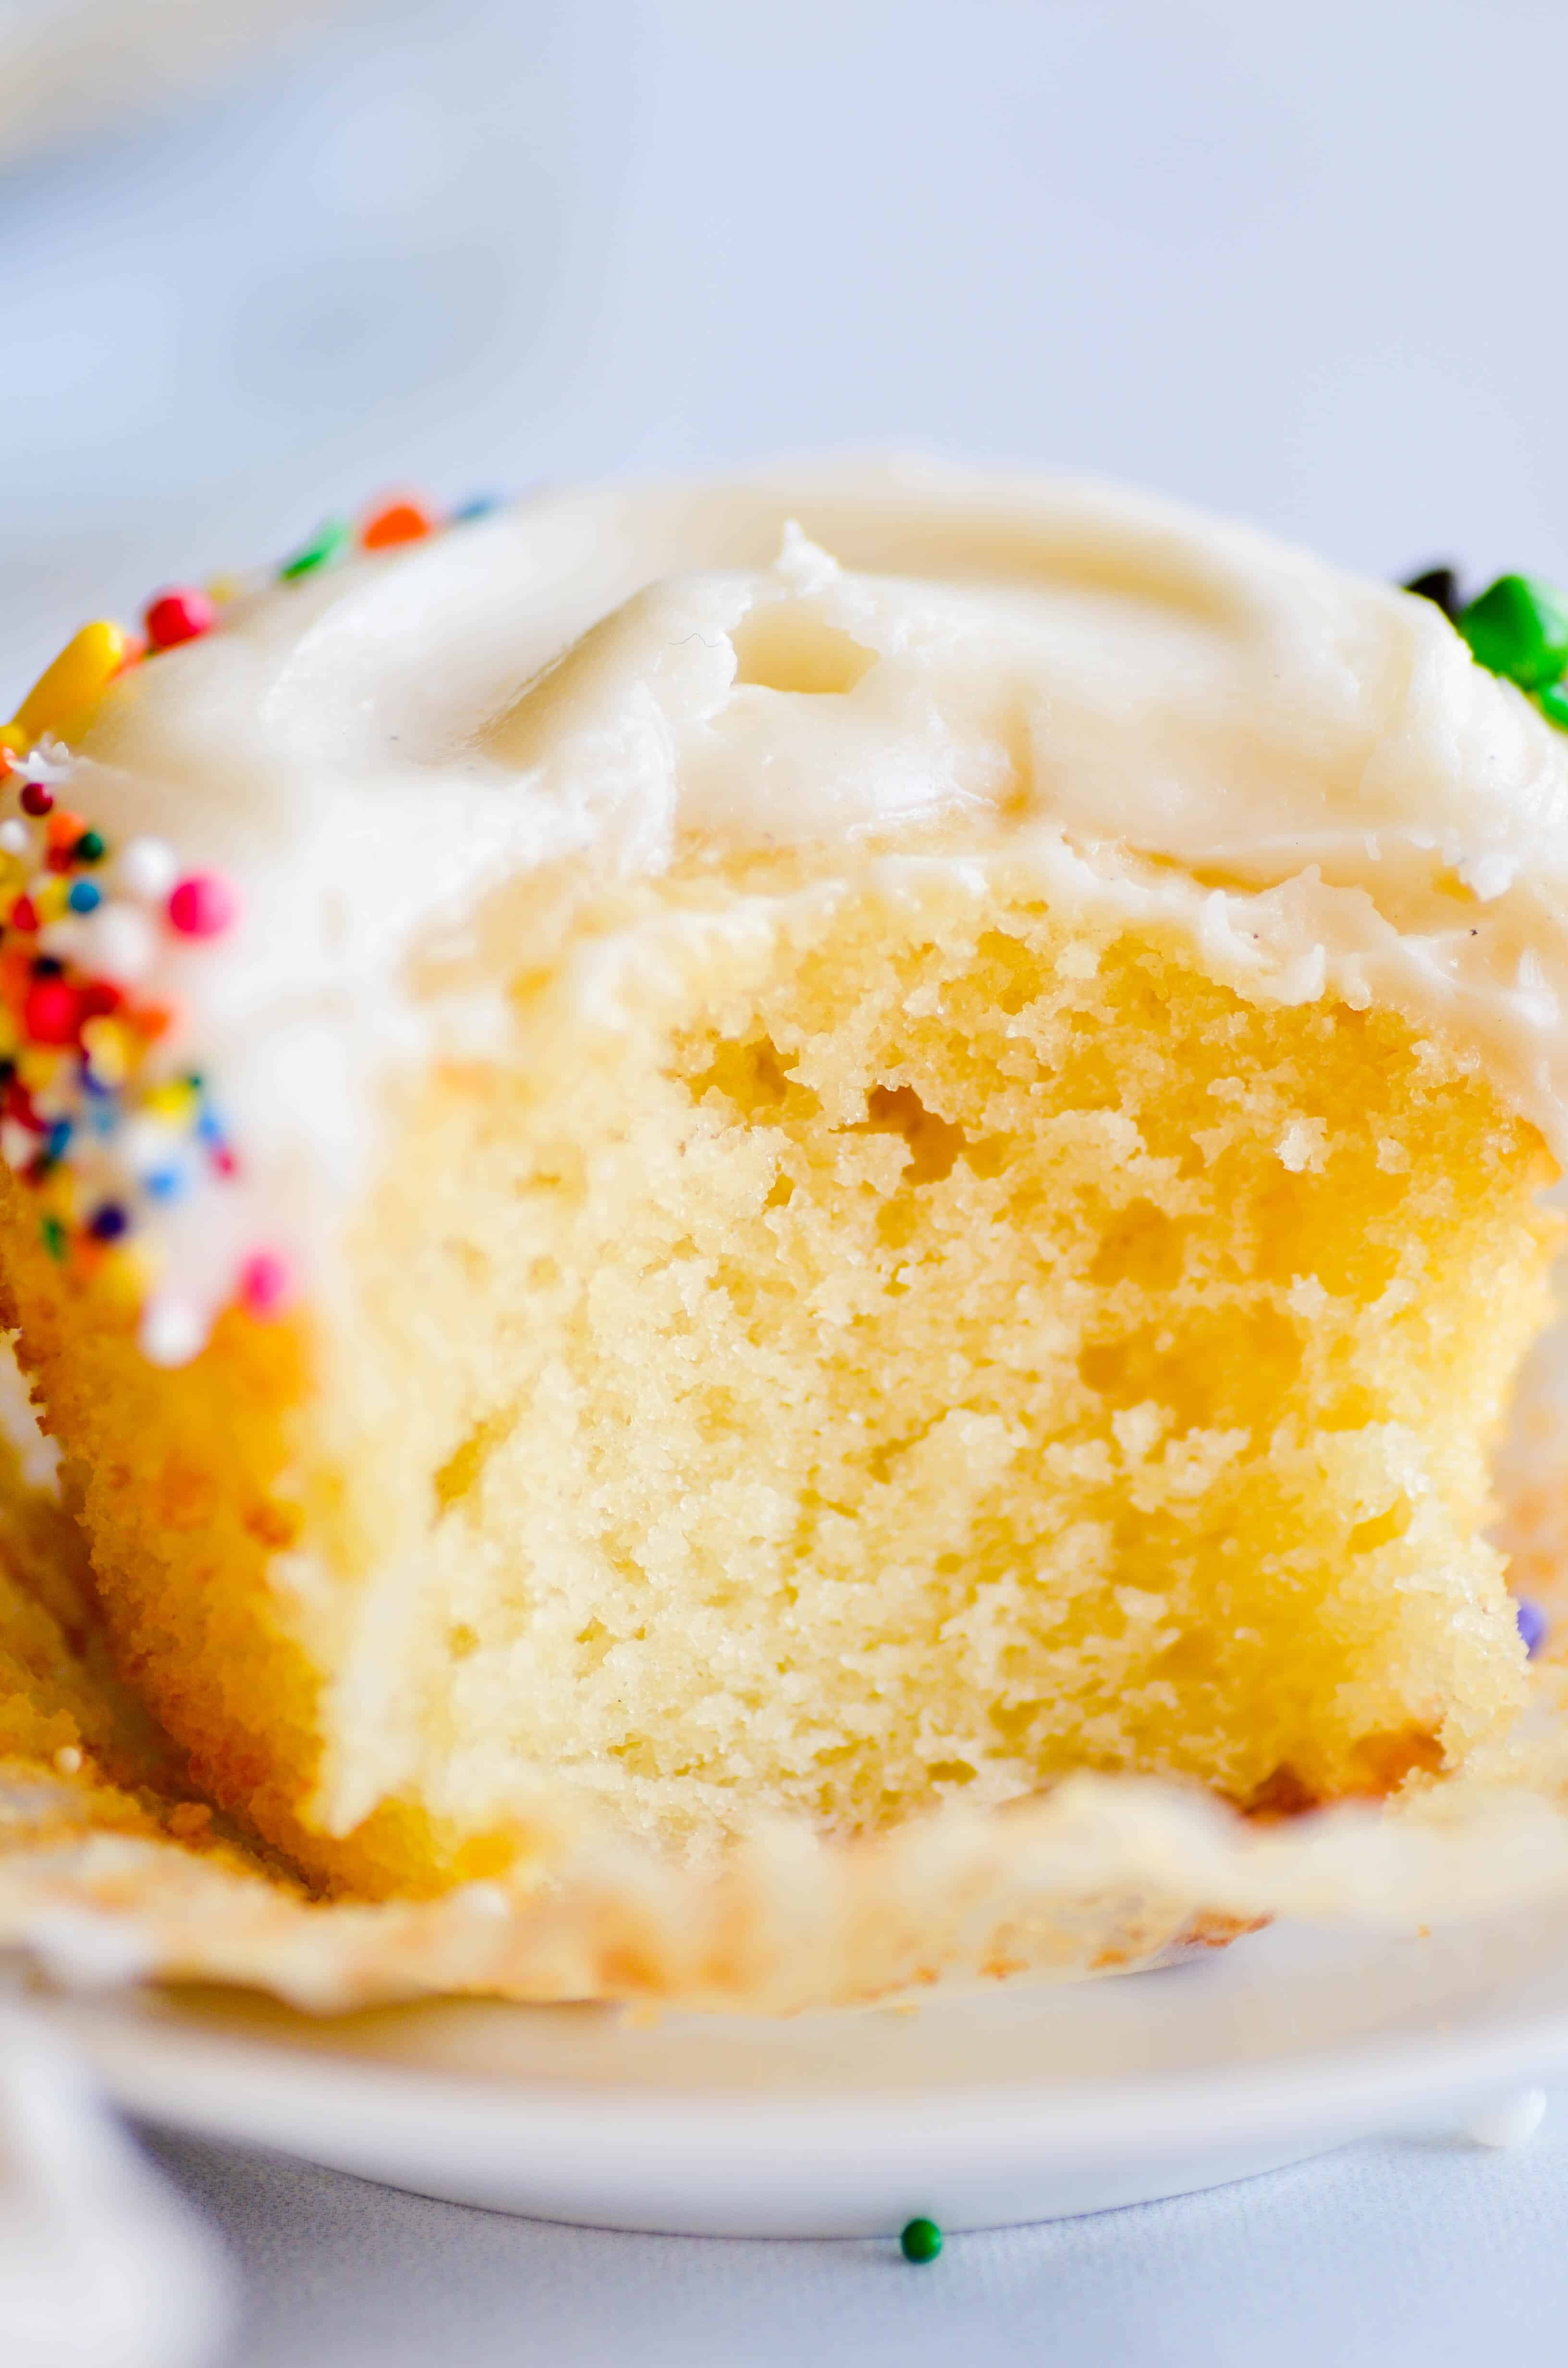 These Classic Vanilla Cupcakes are my favorite! And you'll be surprised how easy they are to make from scratch.